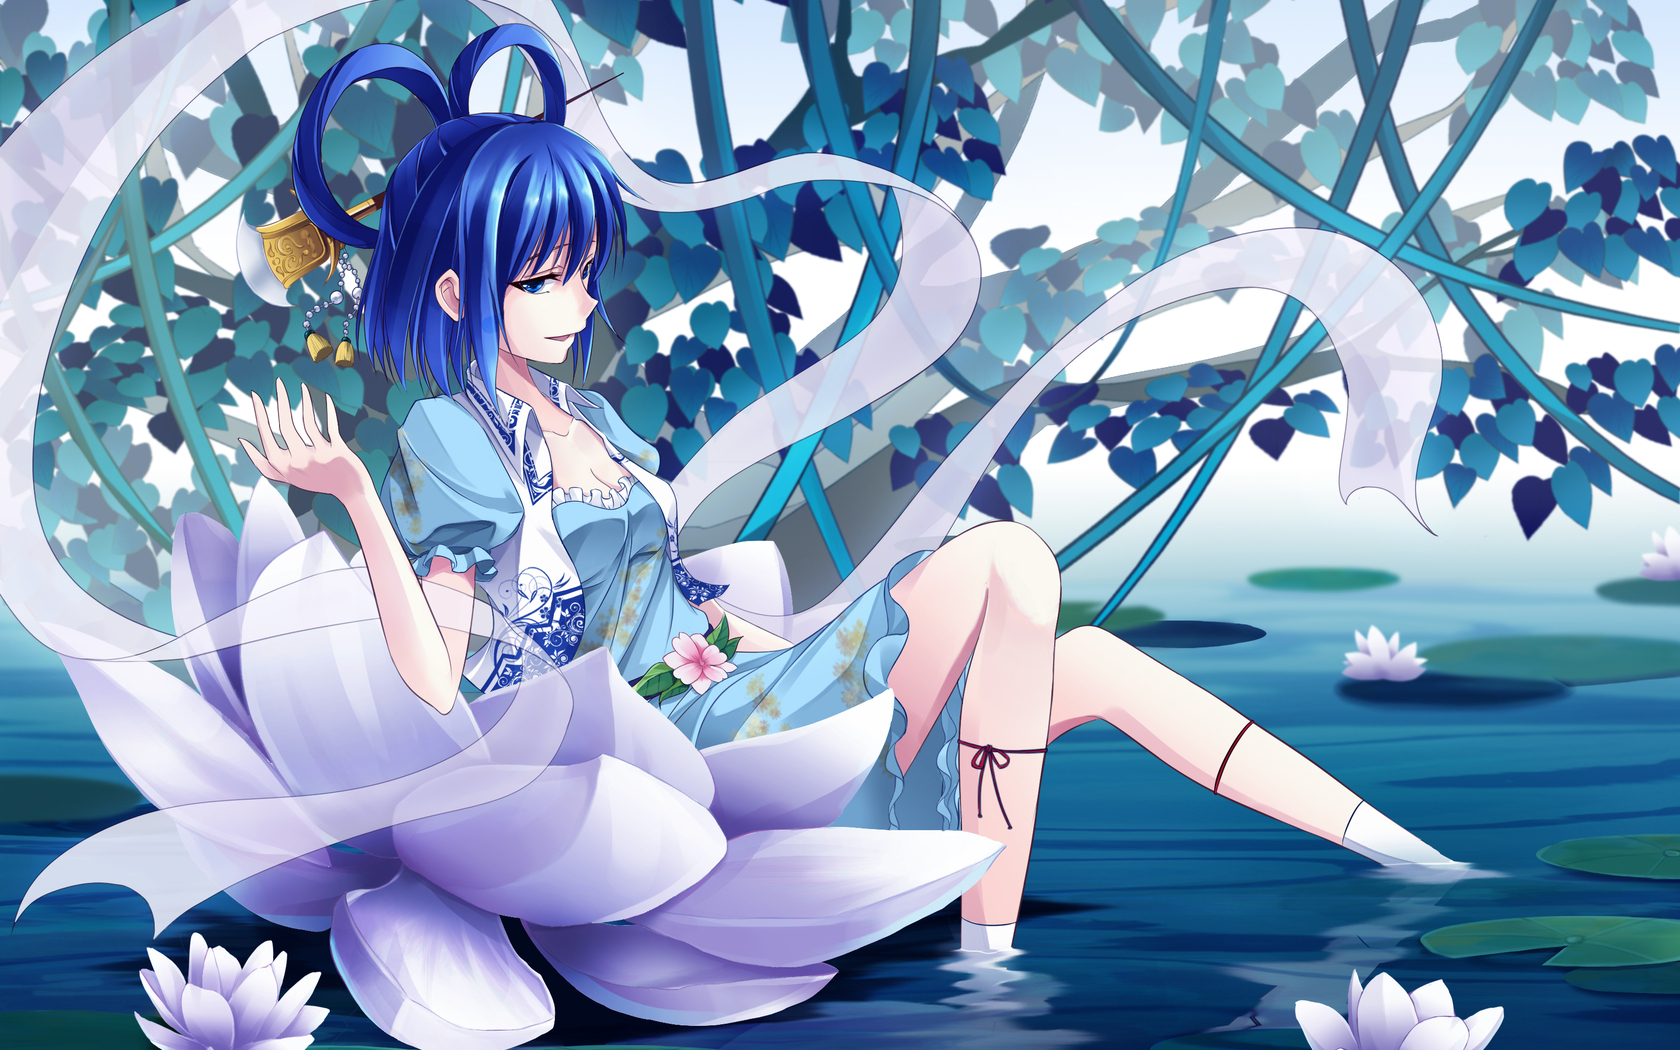 anime wallpaper desktop background | image wallpaper collections